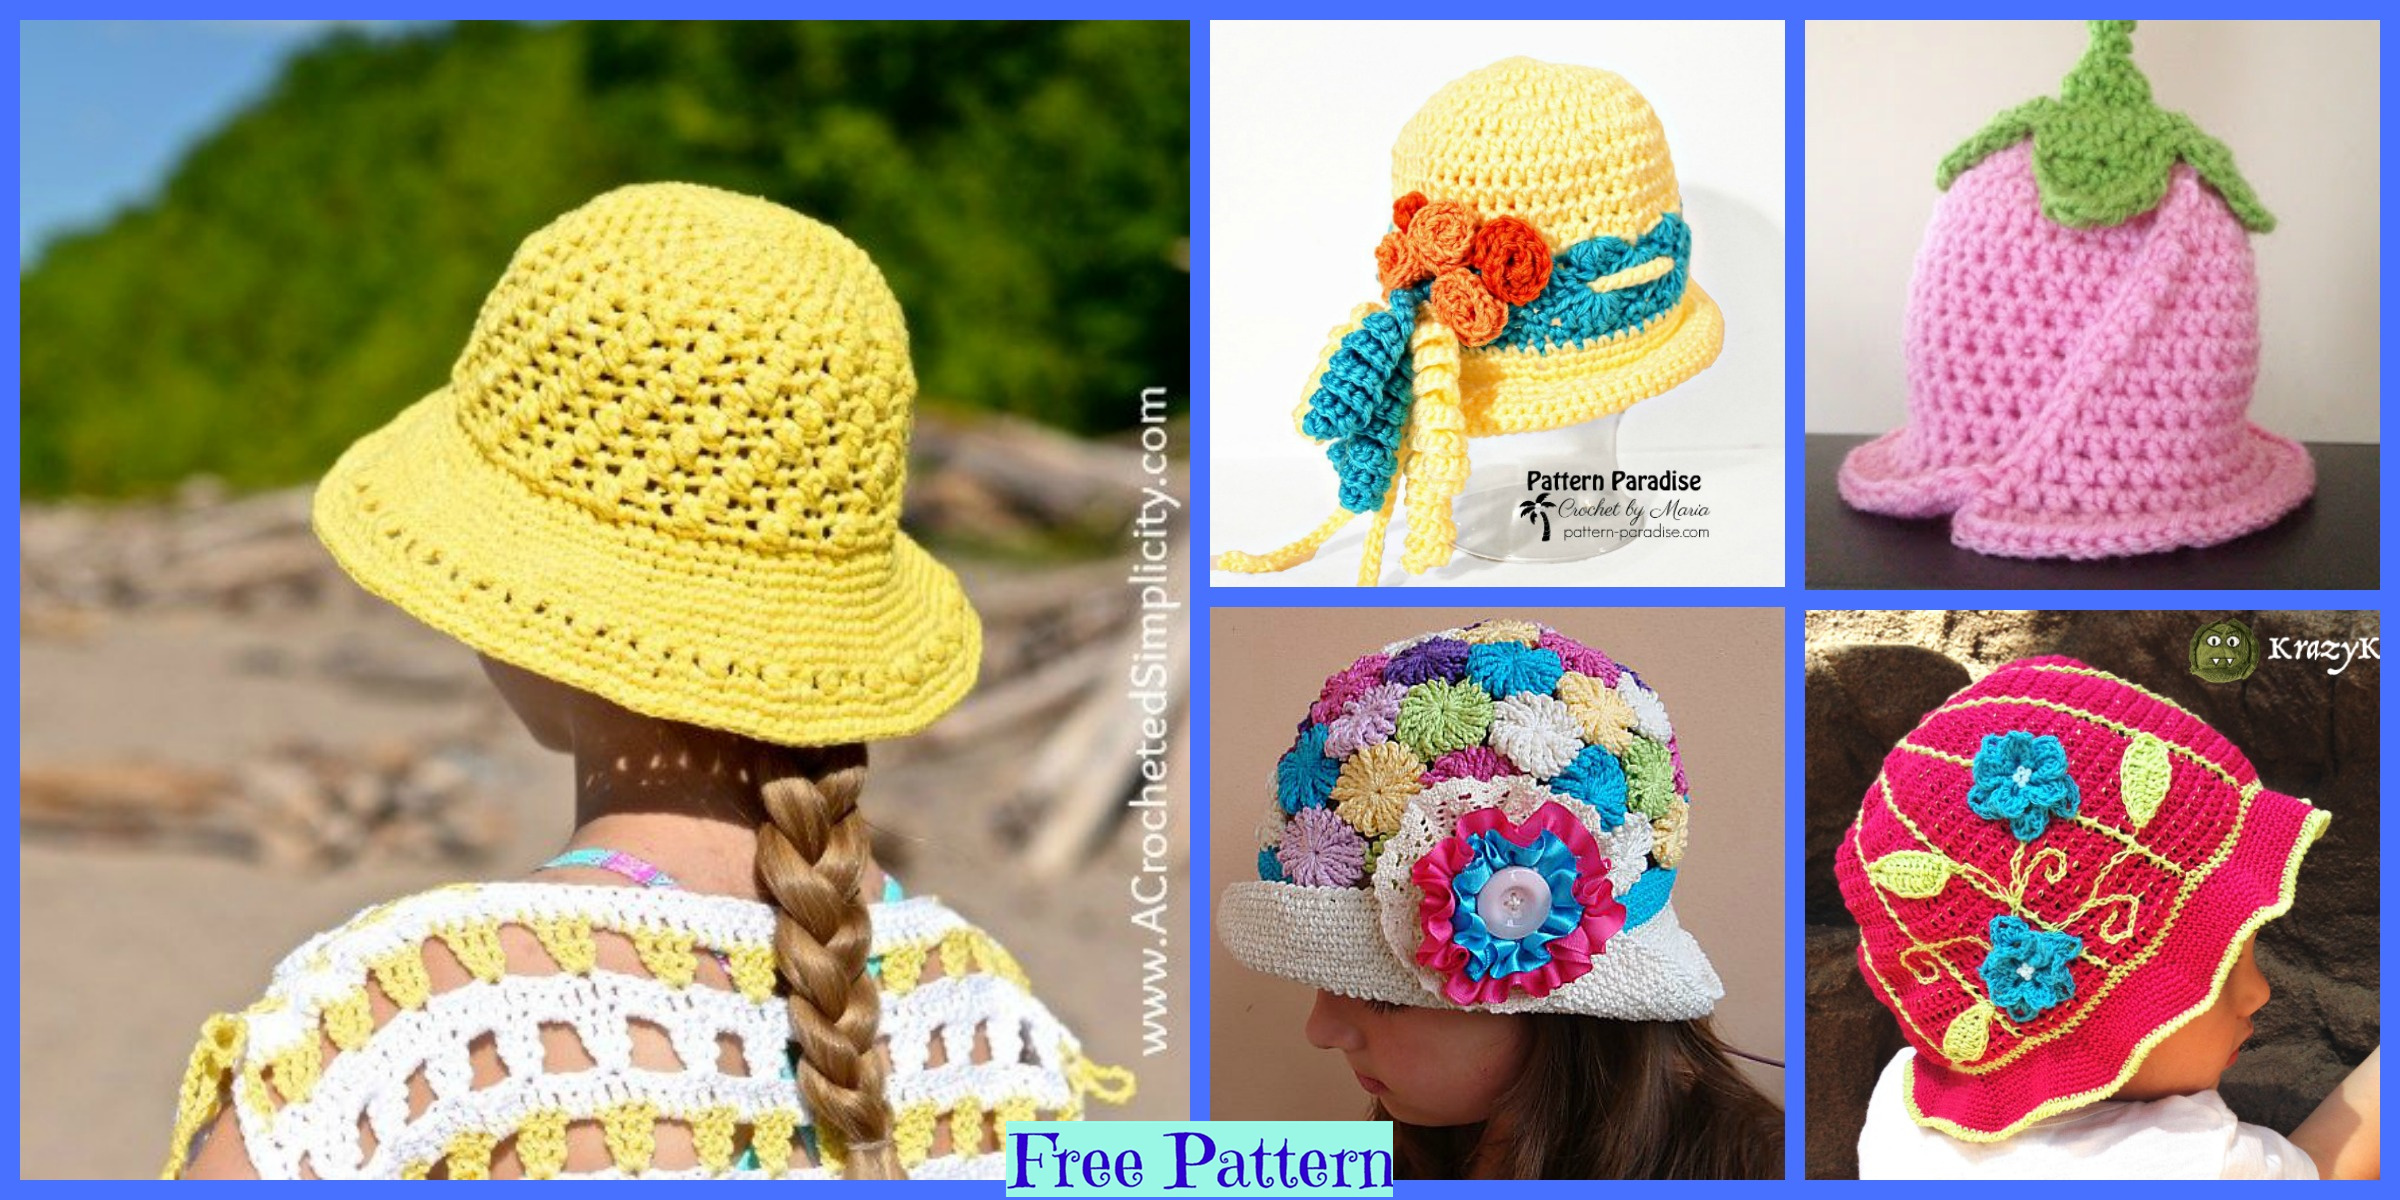 6 Summer Sun Hats – Free Crochet Patterns